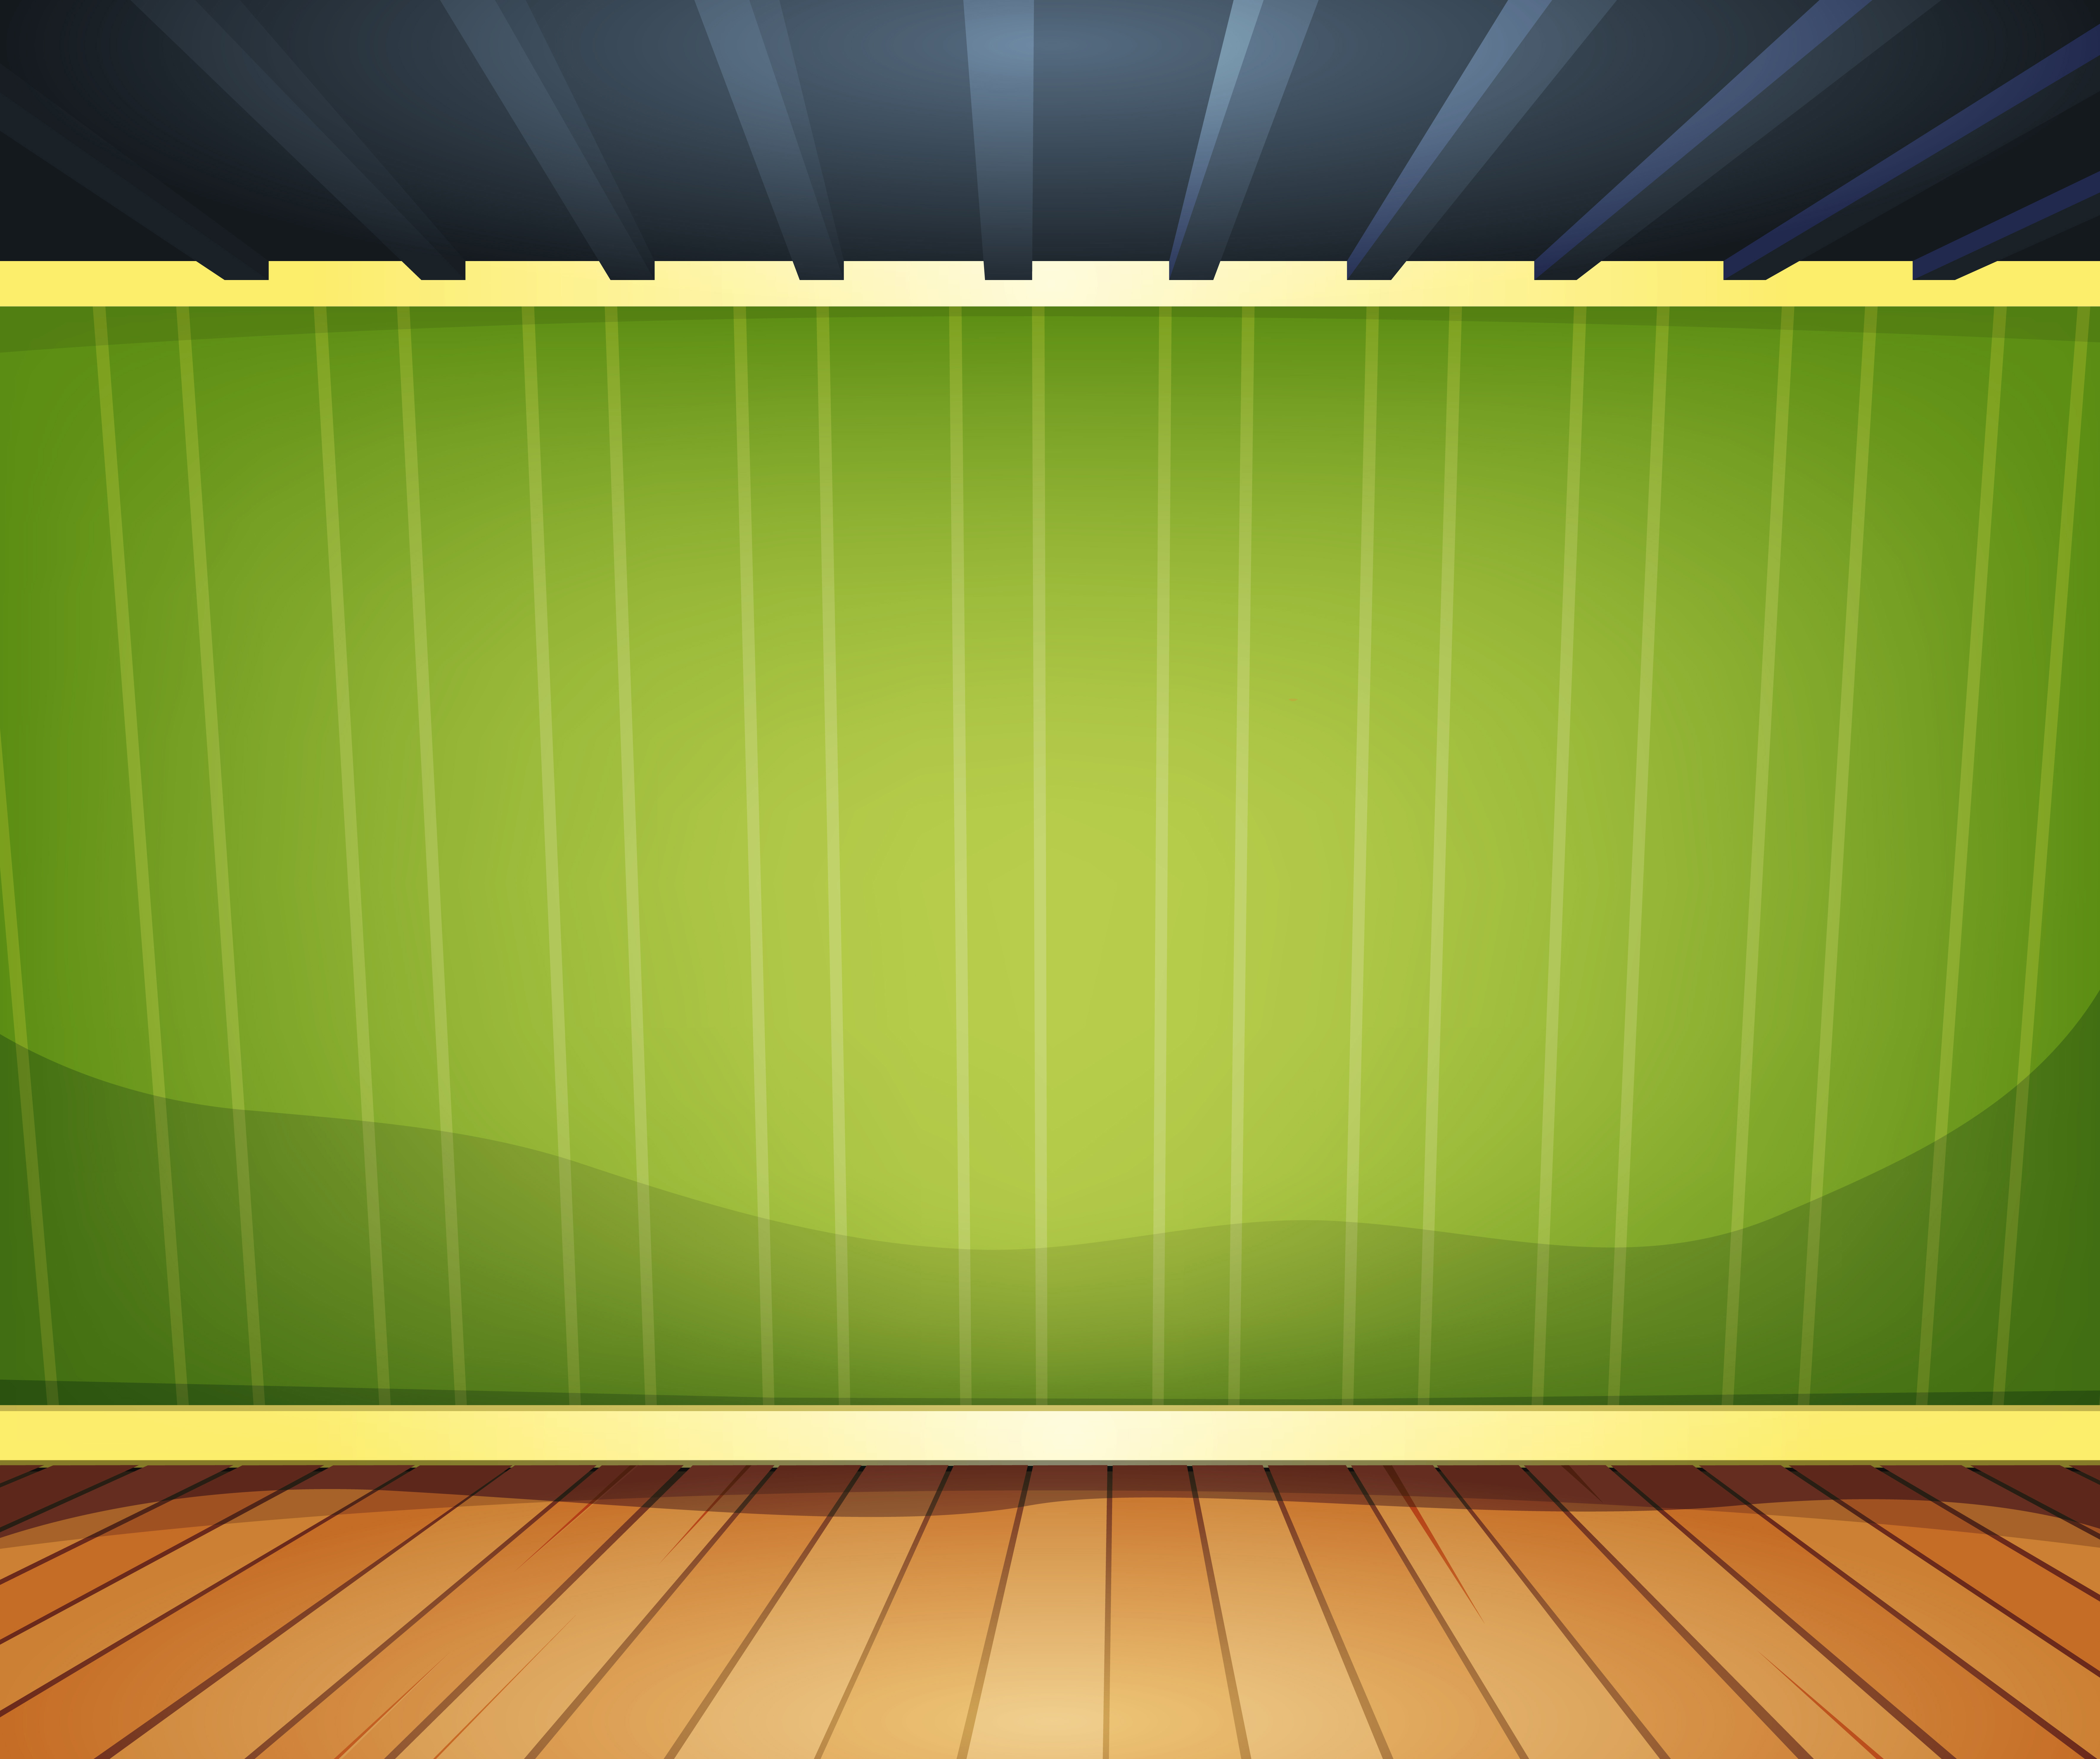 Empty Room With Striped Wallpaper Download Free Vector